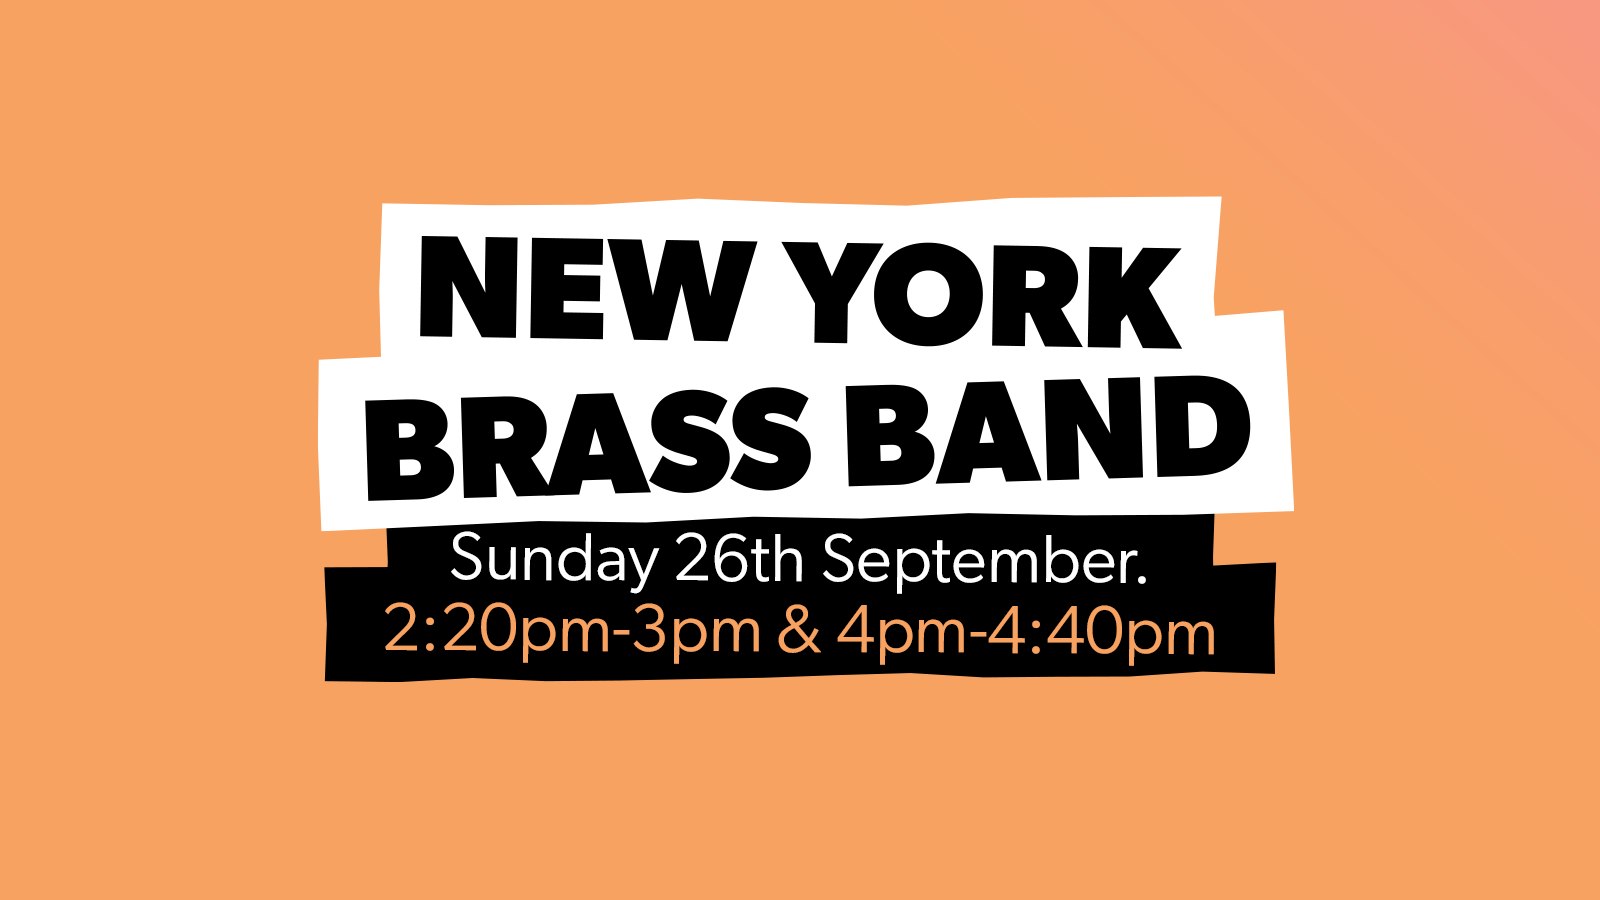 Chow Down: Sunday 26th September  – New York Brass Band (Live)